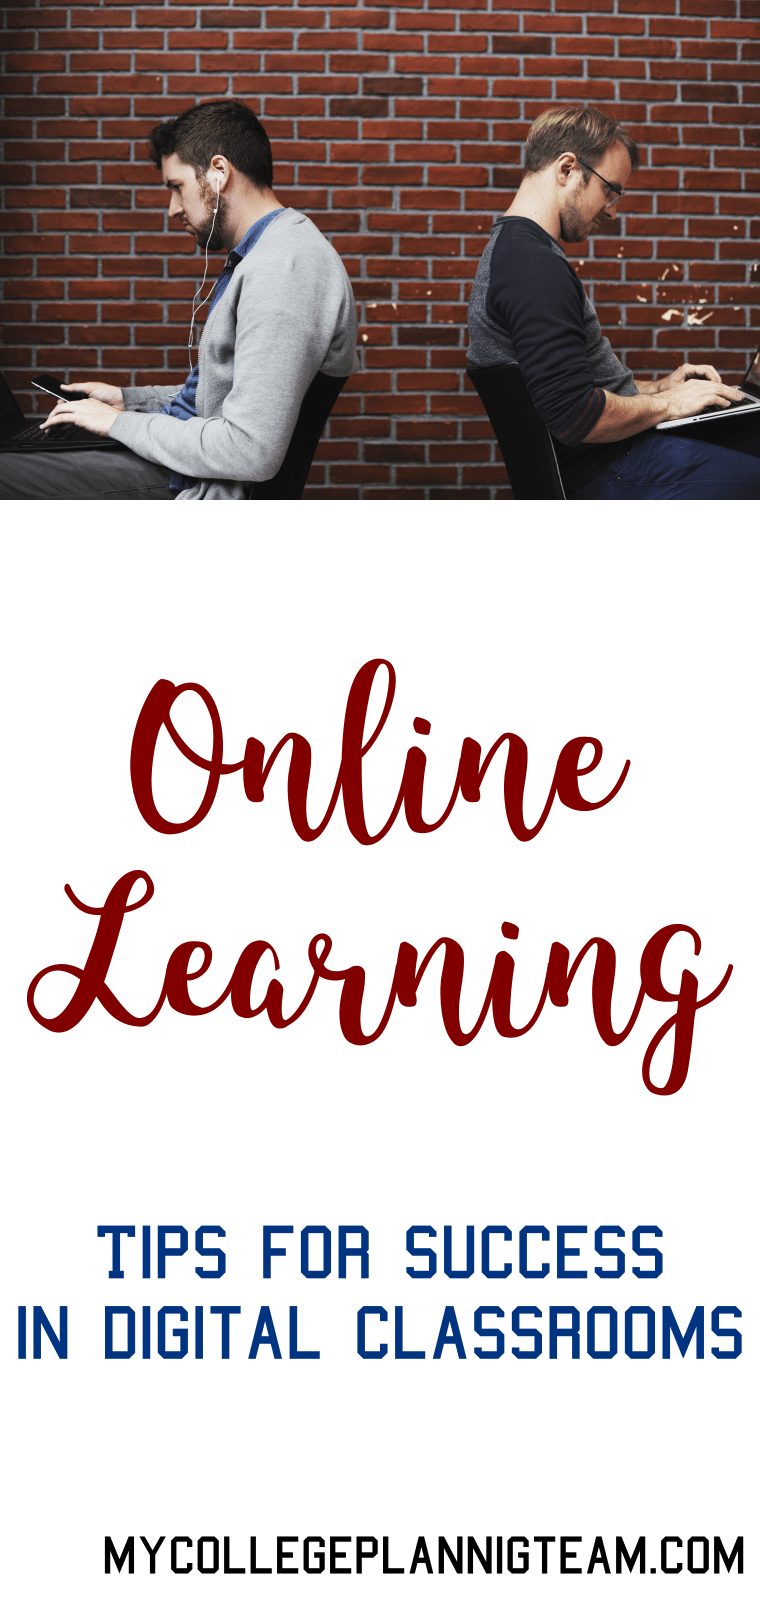 Online learning - Tips for success in digital classes